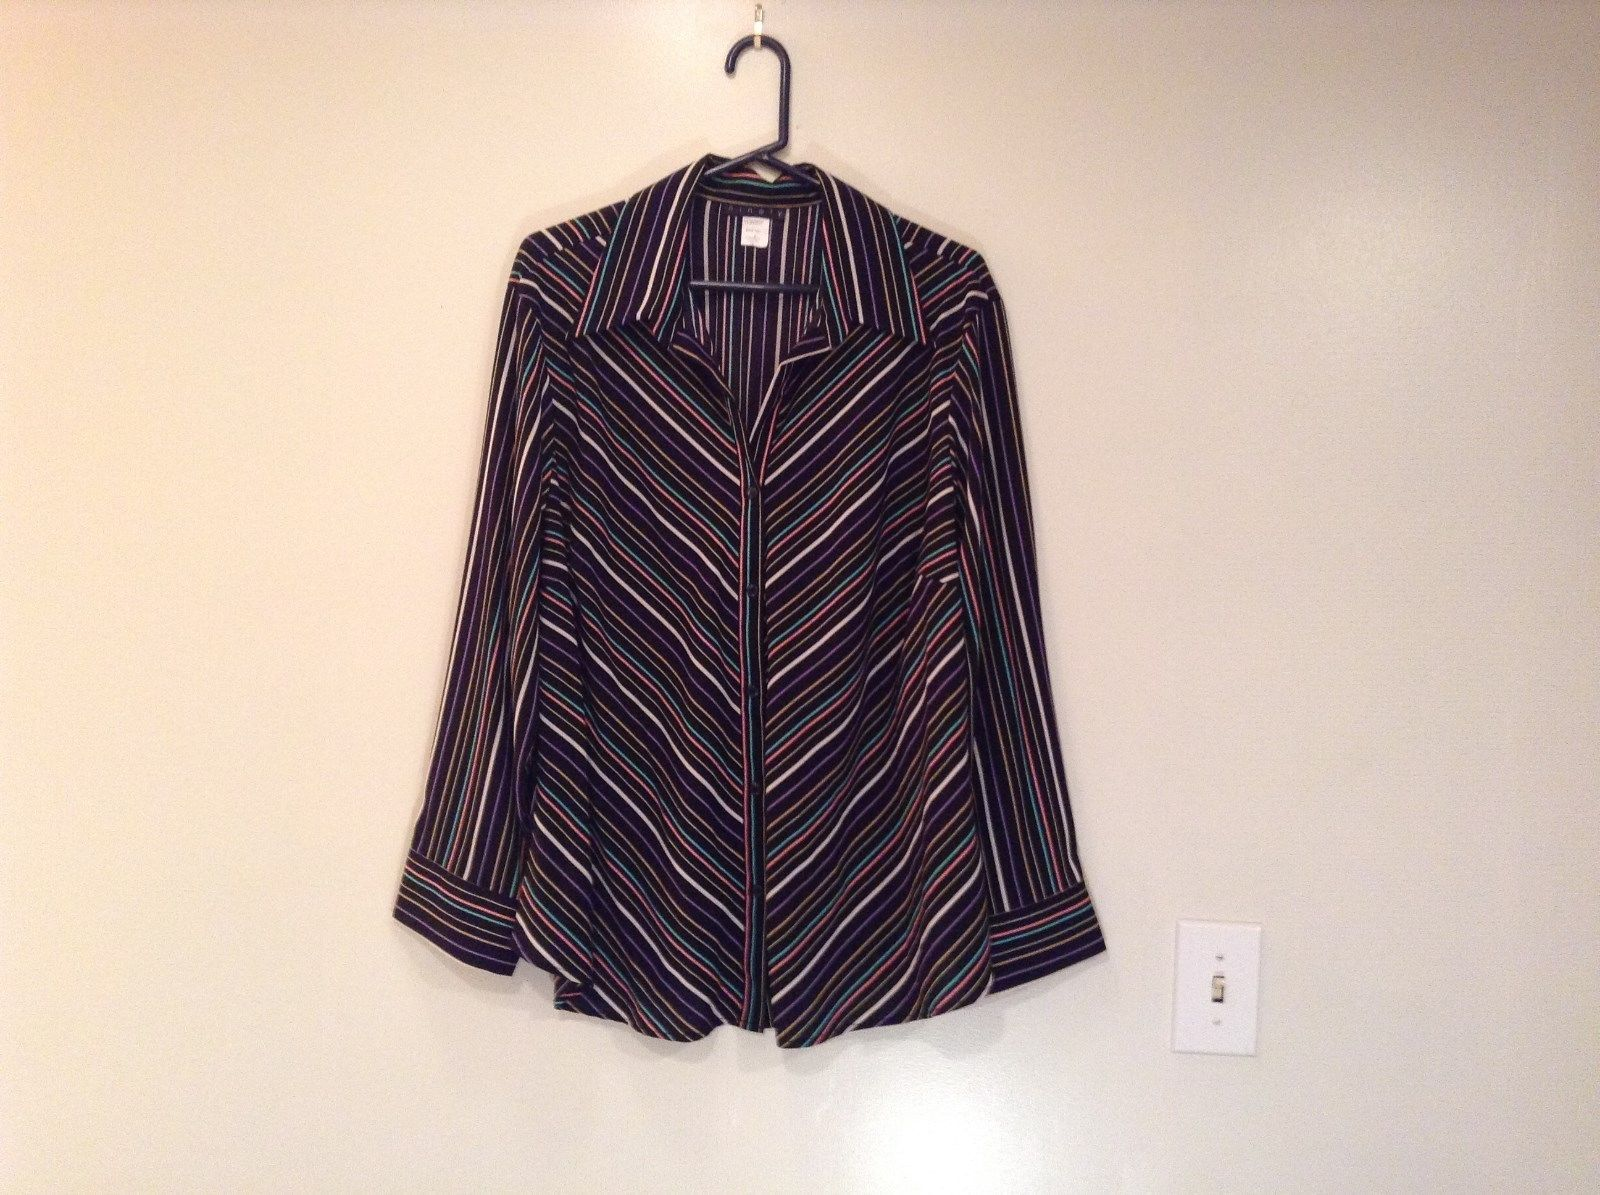 Black with Multicolored Stripes Button Down Shirt by Ninety Size 3X Long Sleeves